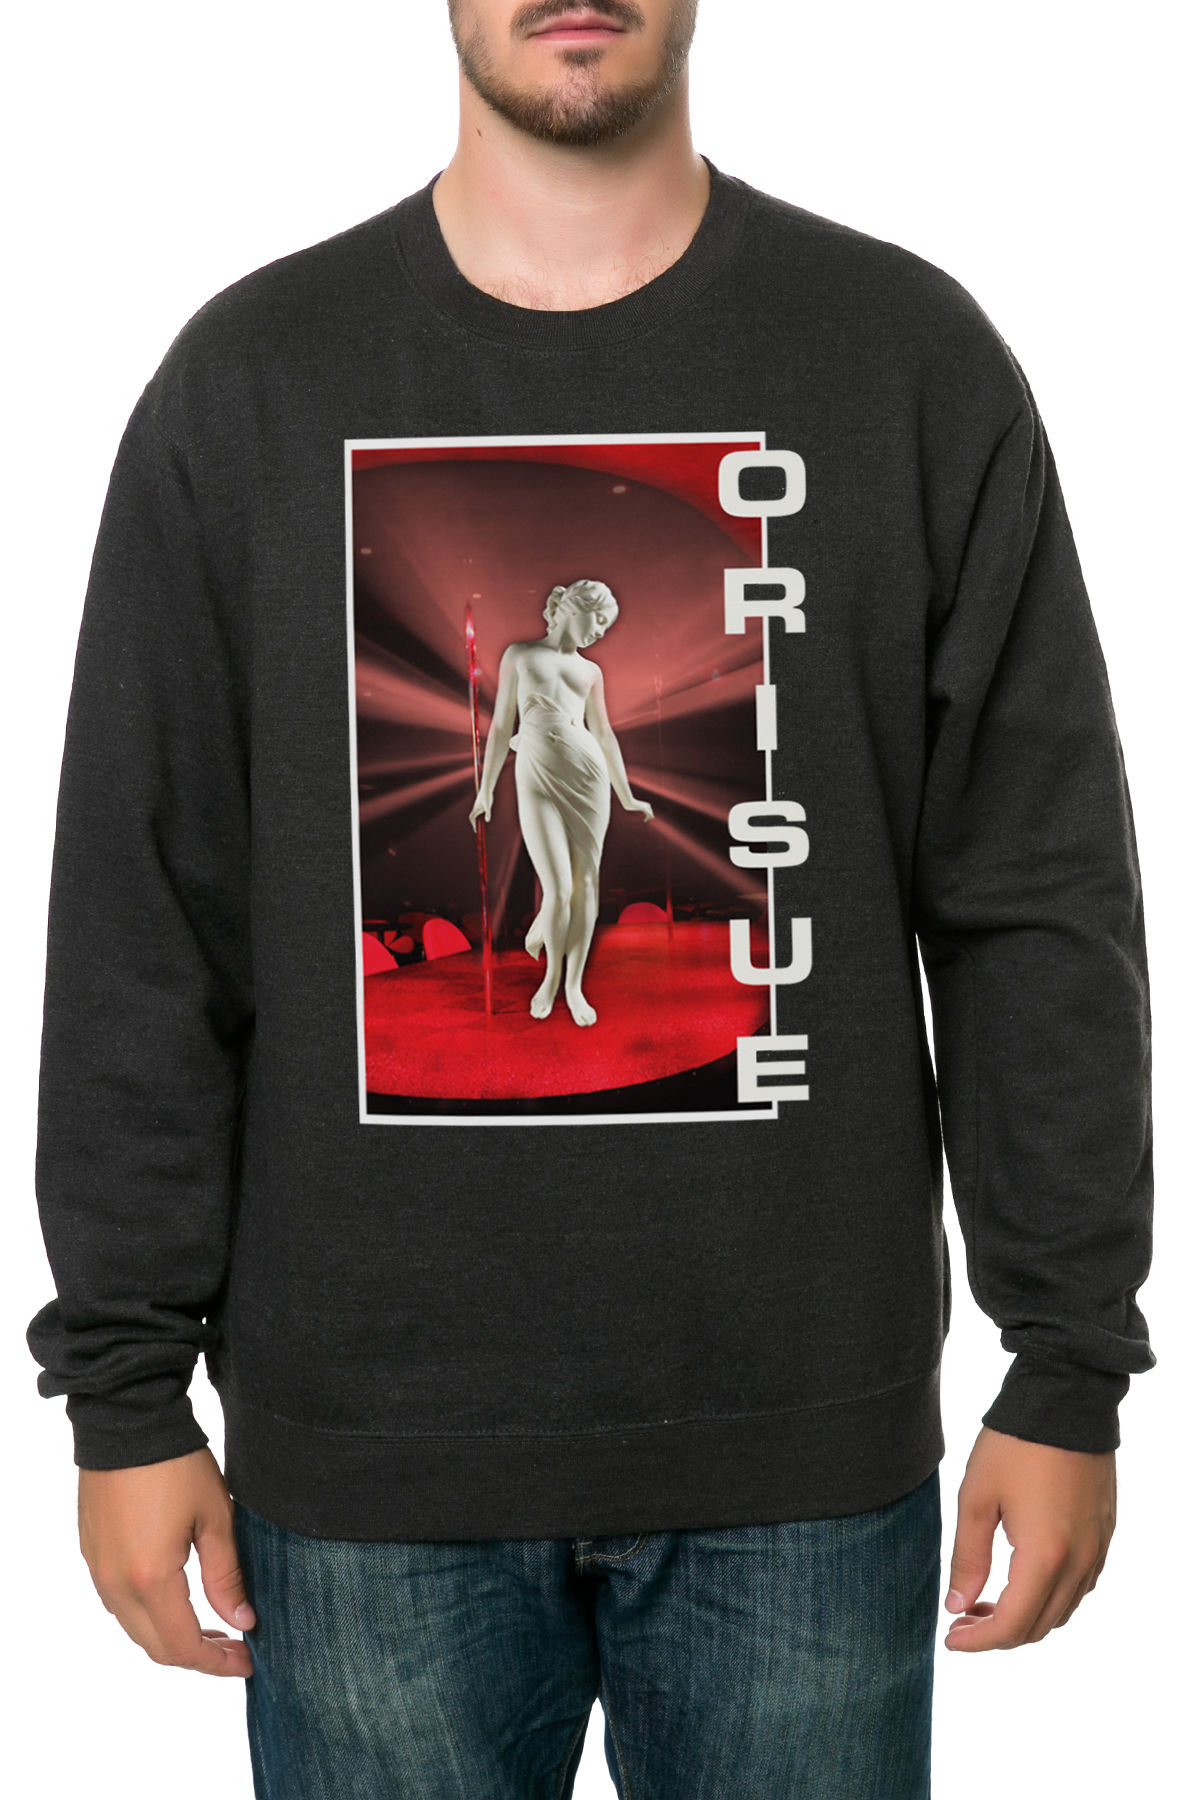 Image of The Club Iris Crewneck Sweatshirt in Charcoal